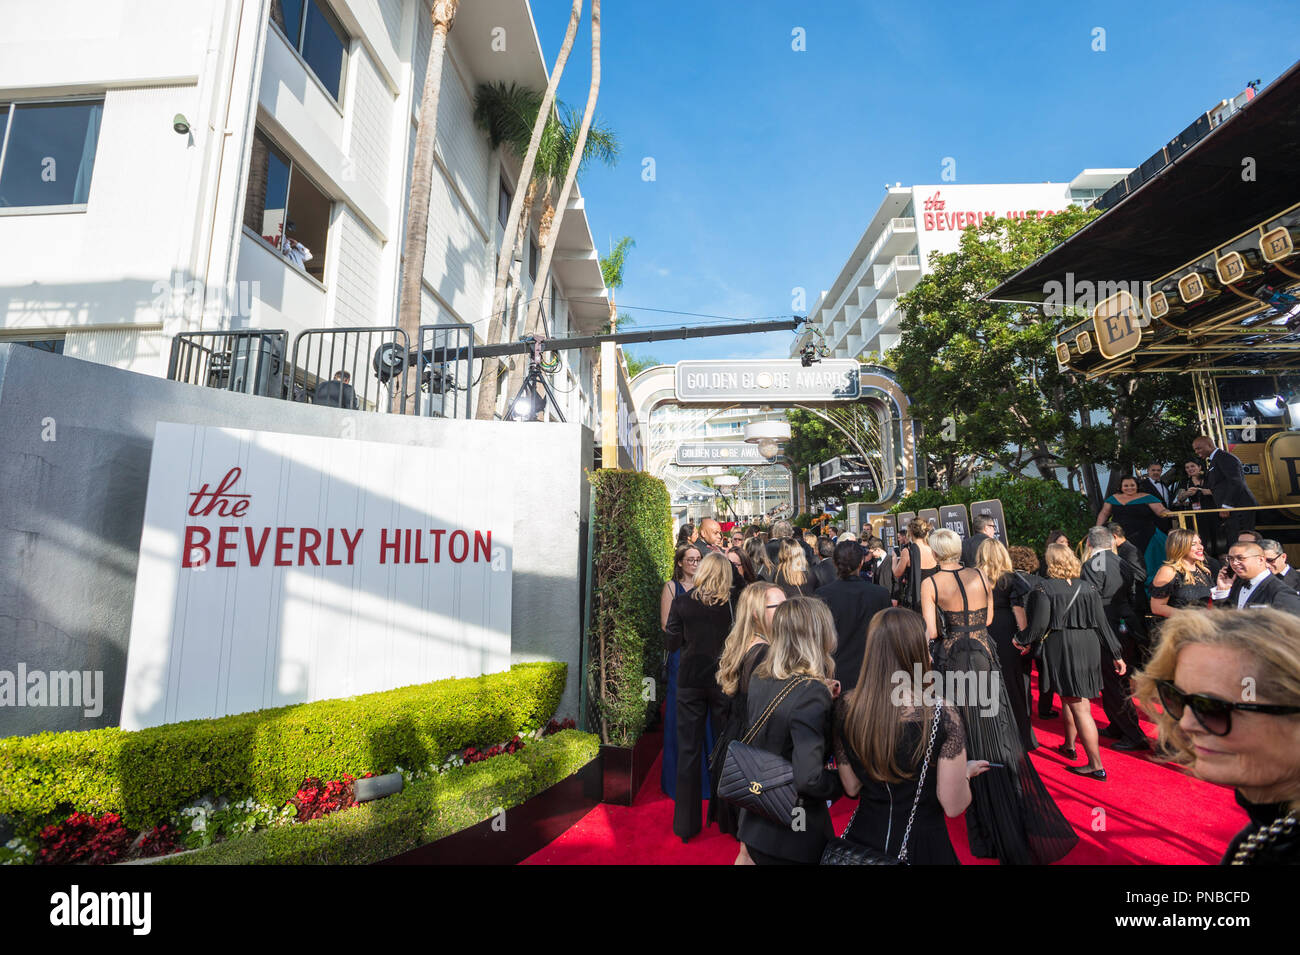 The red carpet at the 75th Annual Golden Globes Awards at the Beverly Hilton in Beverly Hills, CA on Sunday, January 7, 2018. - Stock Image